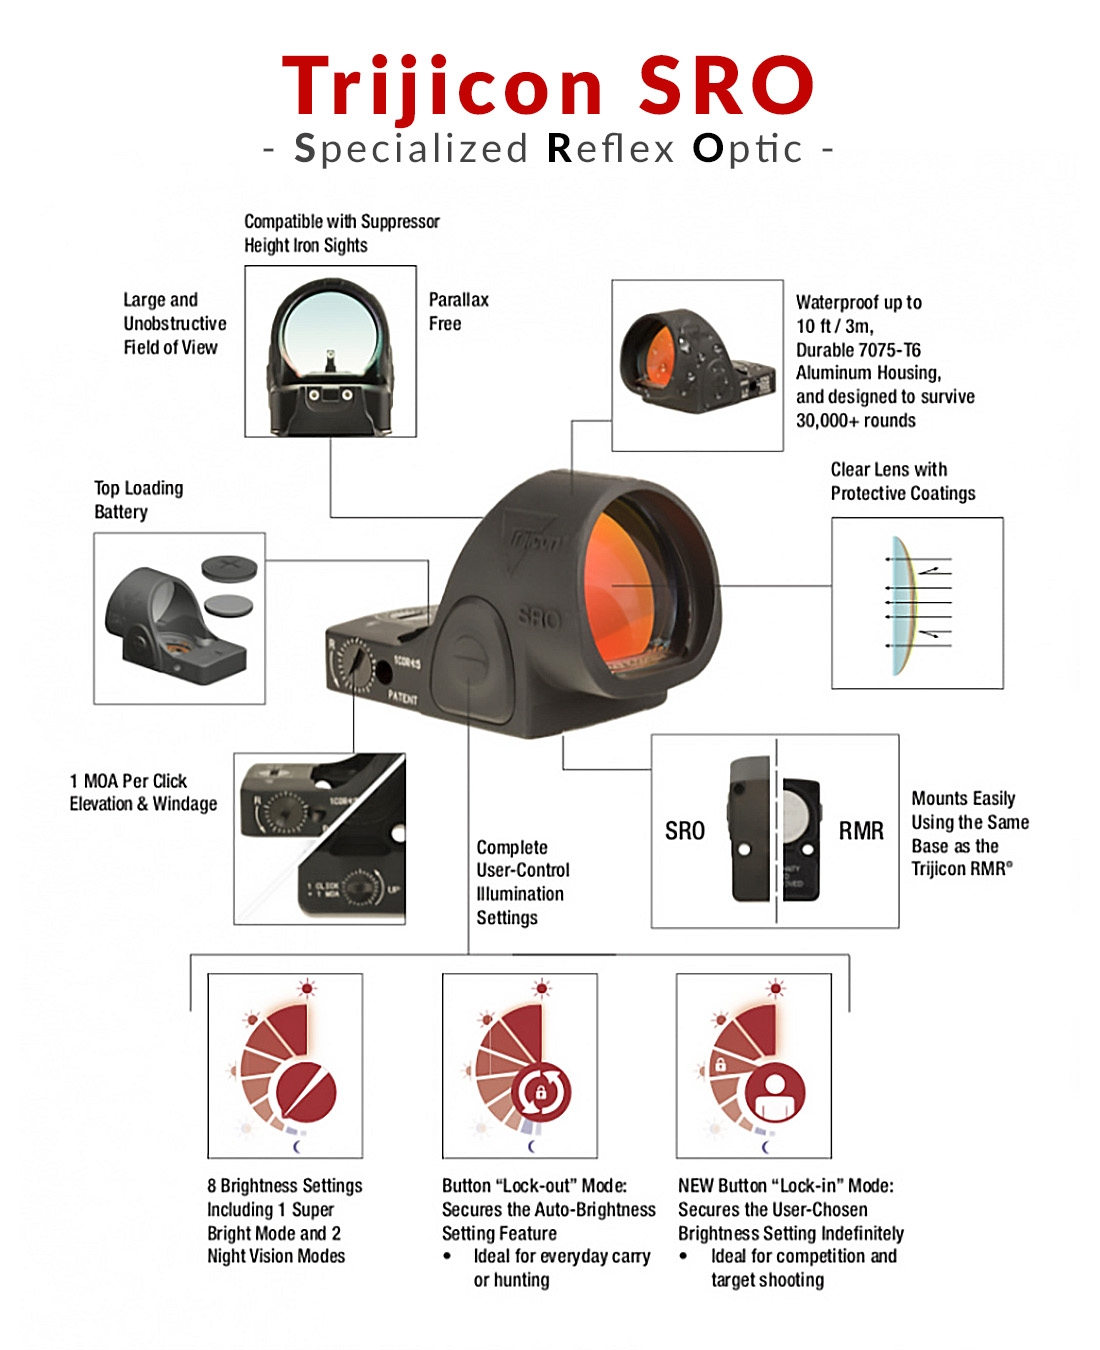 "Trijicon SRO ""Specialized Reflex Optic"", now available in Europe"